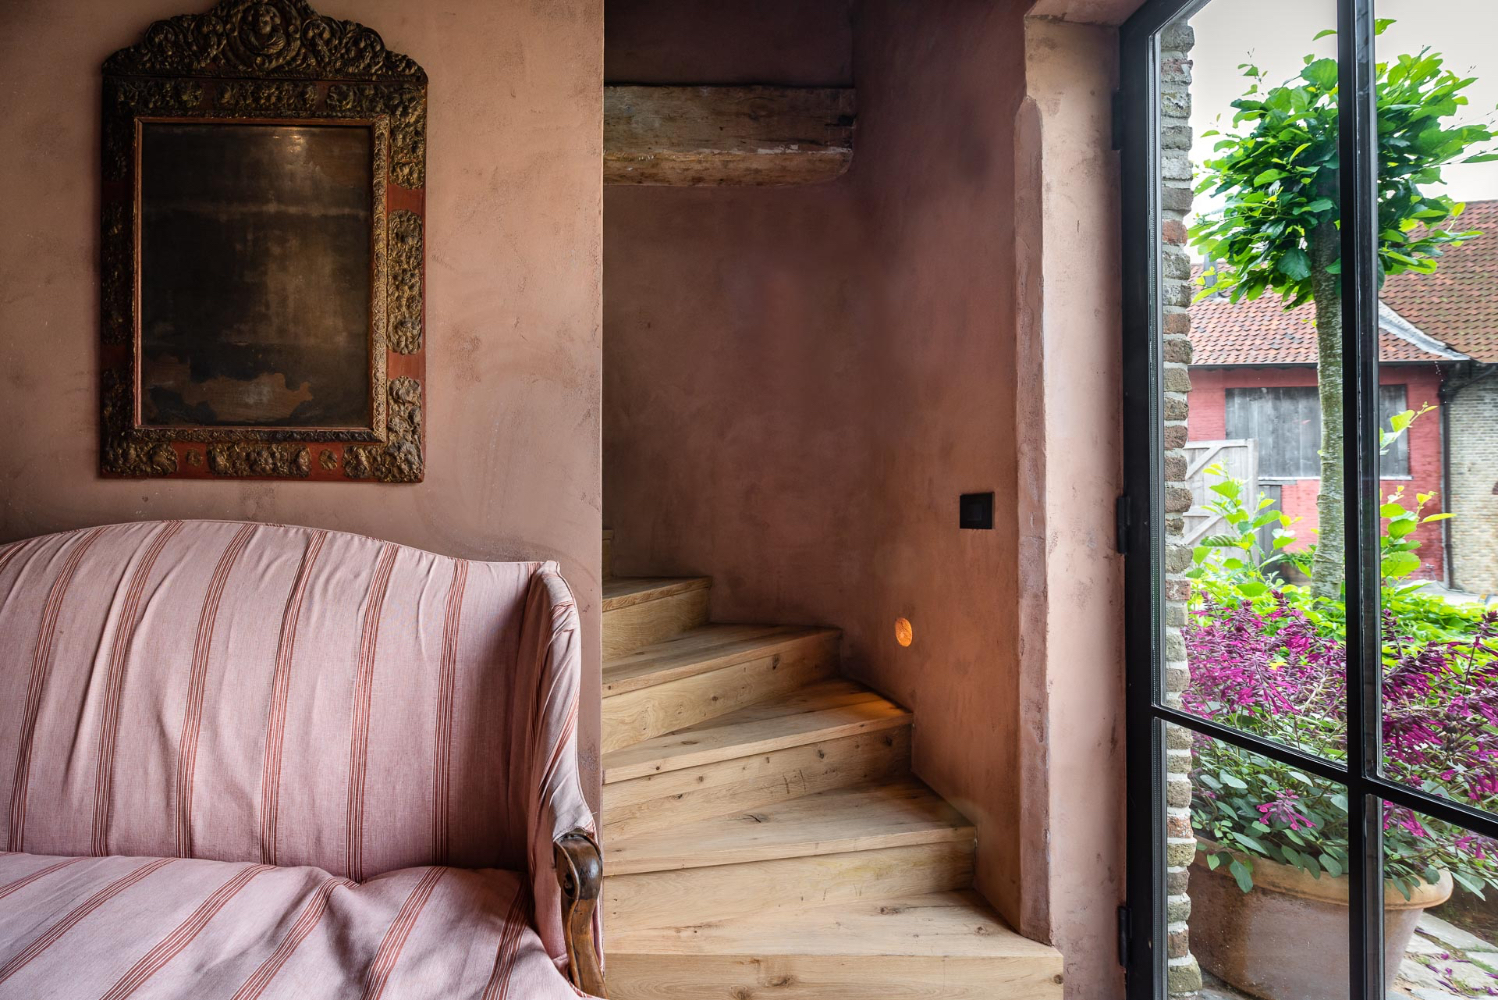 Rosy plaster walls, character rich wood steps, and exquisitely decorated interiors grace The Little Monastery, a B&B by Brigitte Garnier. Come see more!